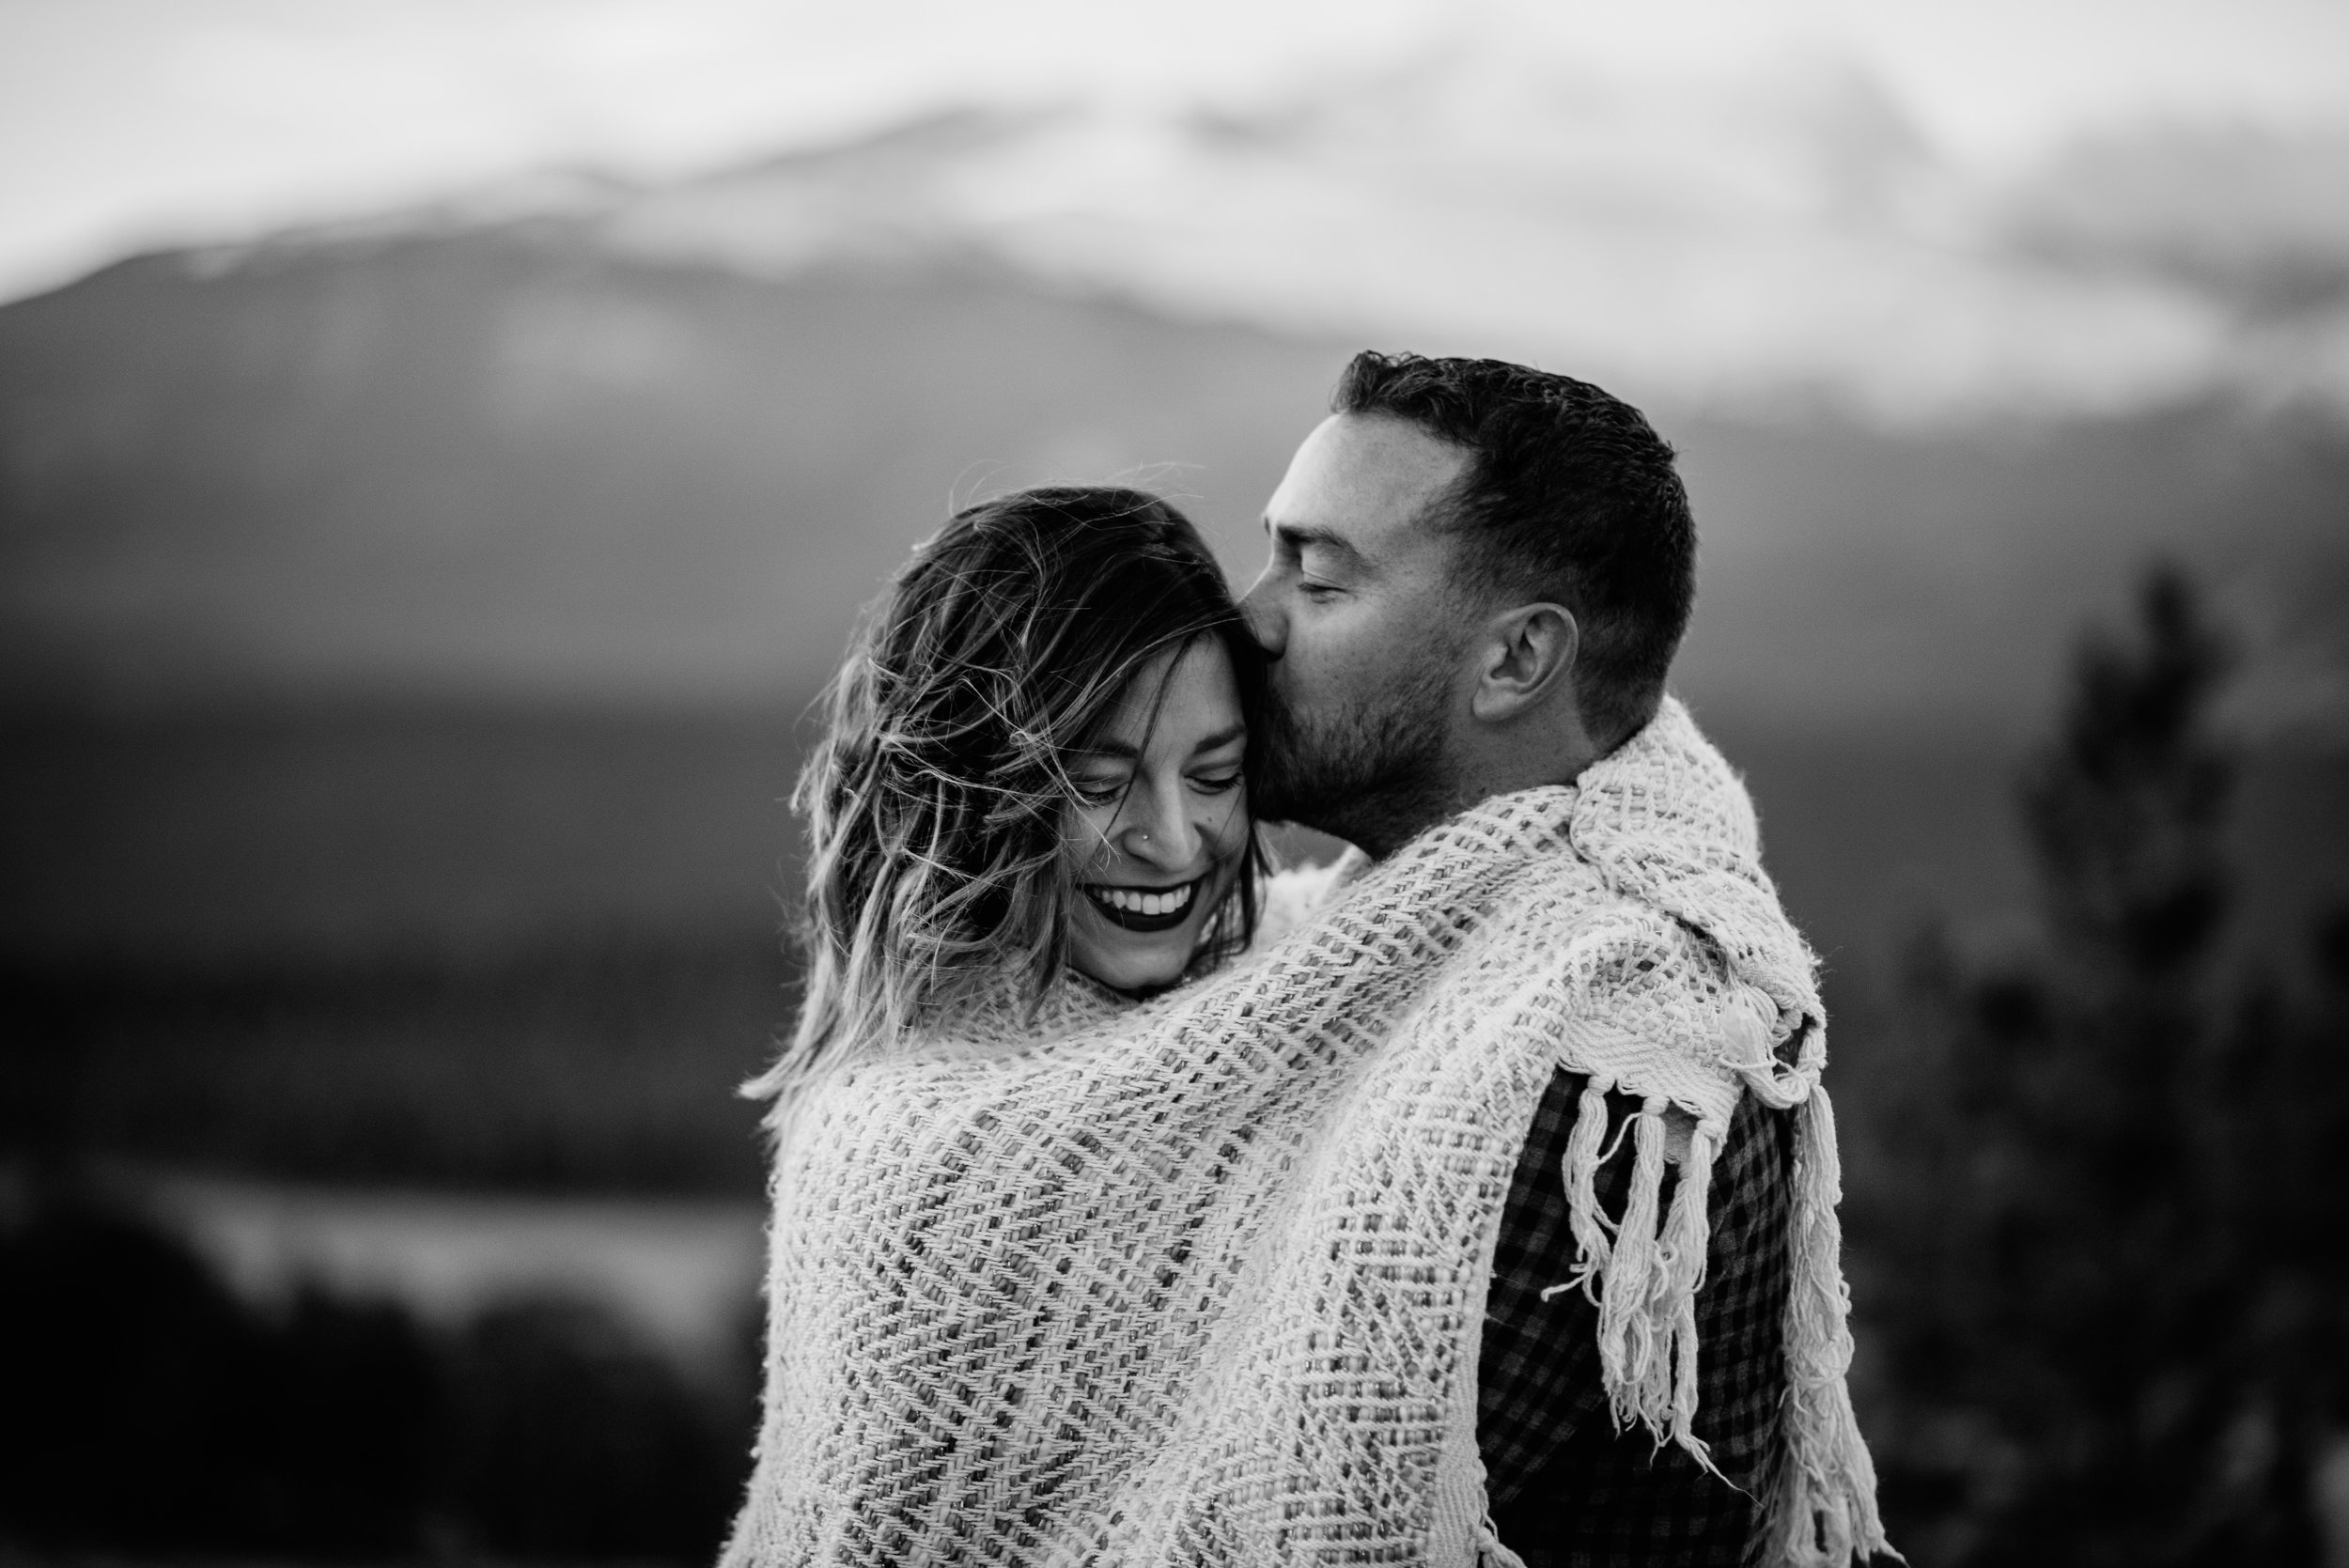 Denver, Colorado wedding, elopement, & intimate wedding photographer for adventurous, boho couples.